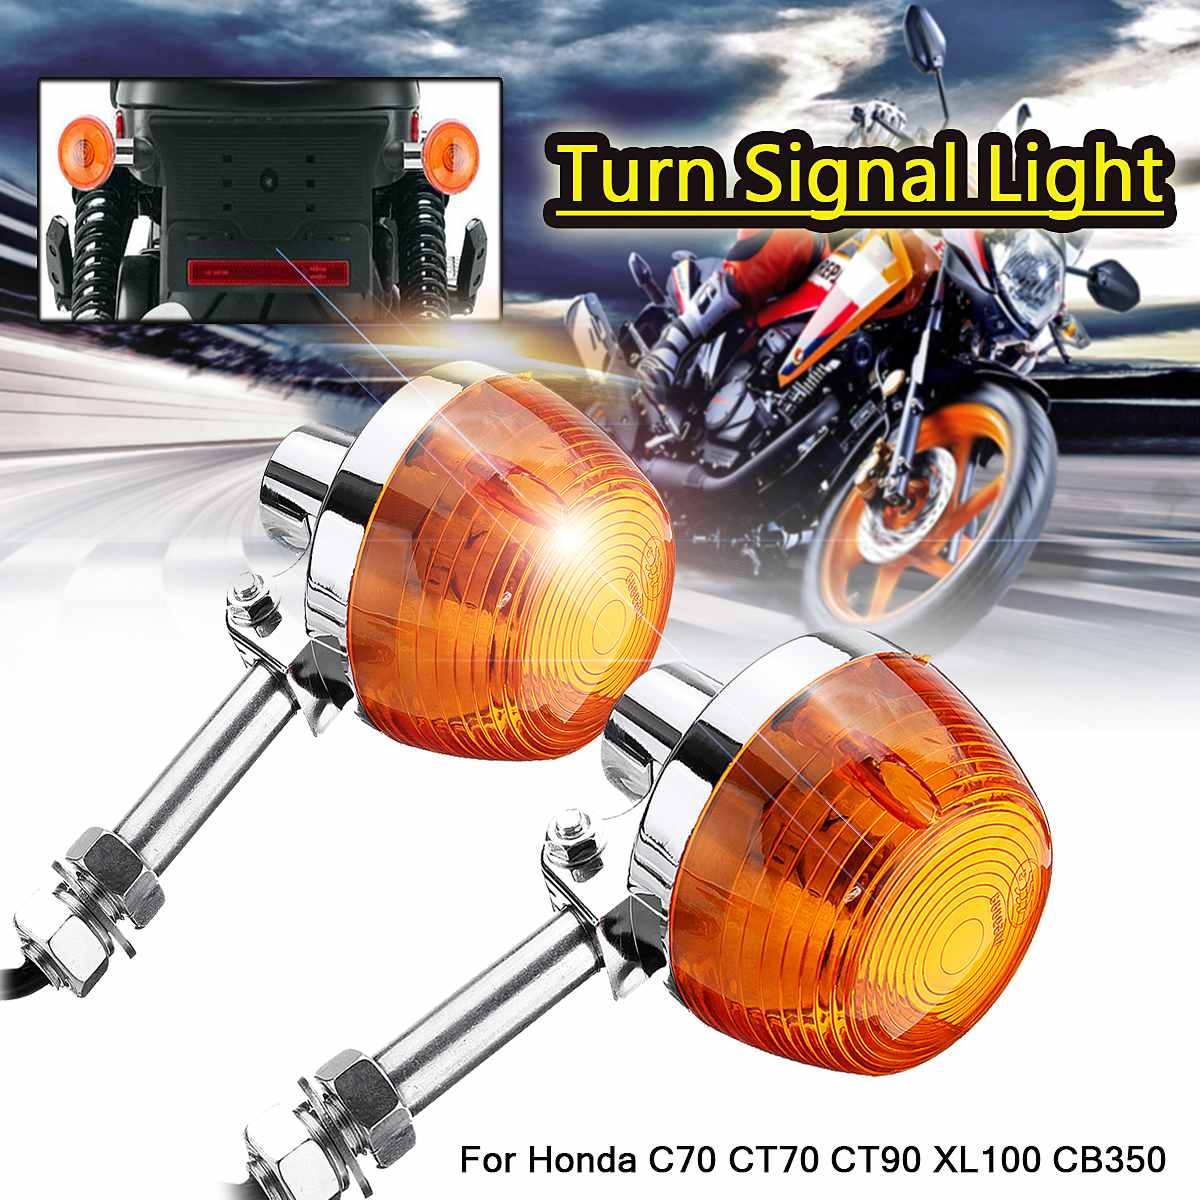 2X Motorcycle Turn Signal Light Moto Indicators Flashers Blinkers Lamp For Honda C70 CT70 CT90 XL100 CB350 CM400 CB450 CB750